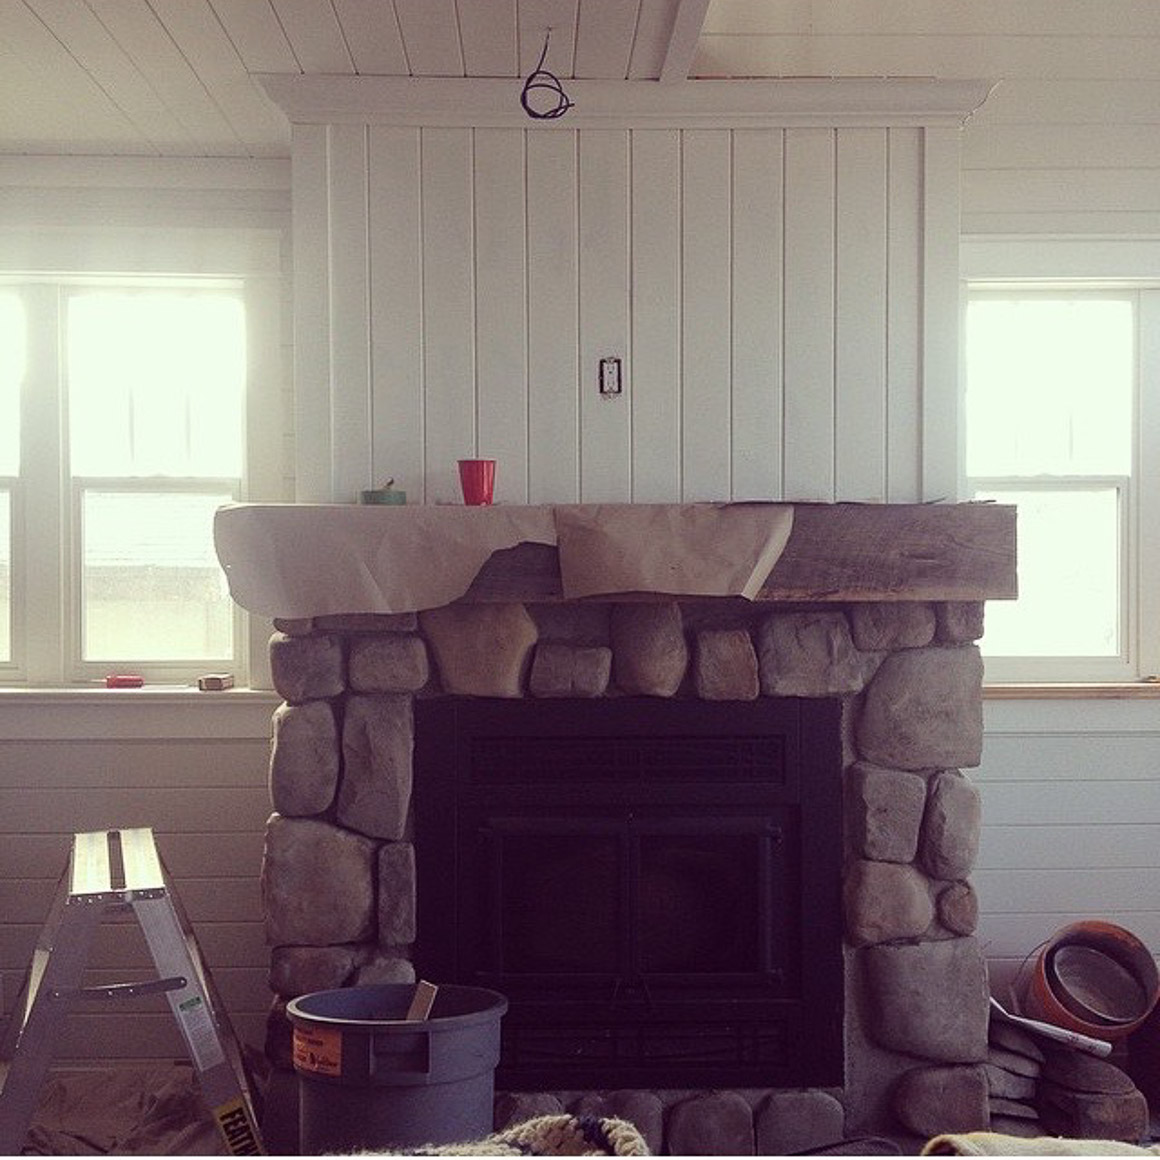 stone-face-fireplace-with-rustic-wood-mantel-5